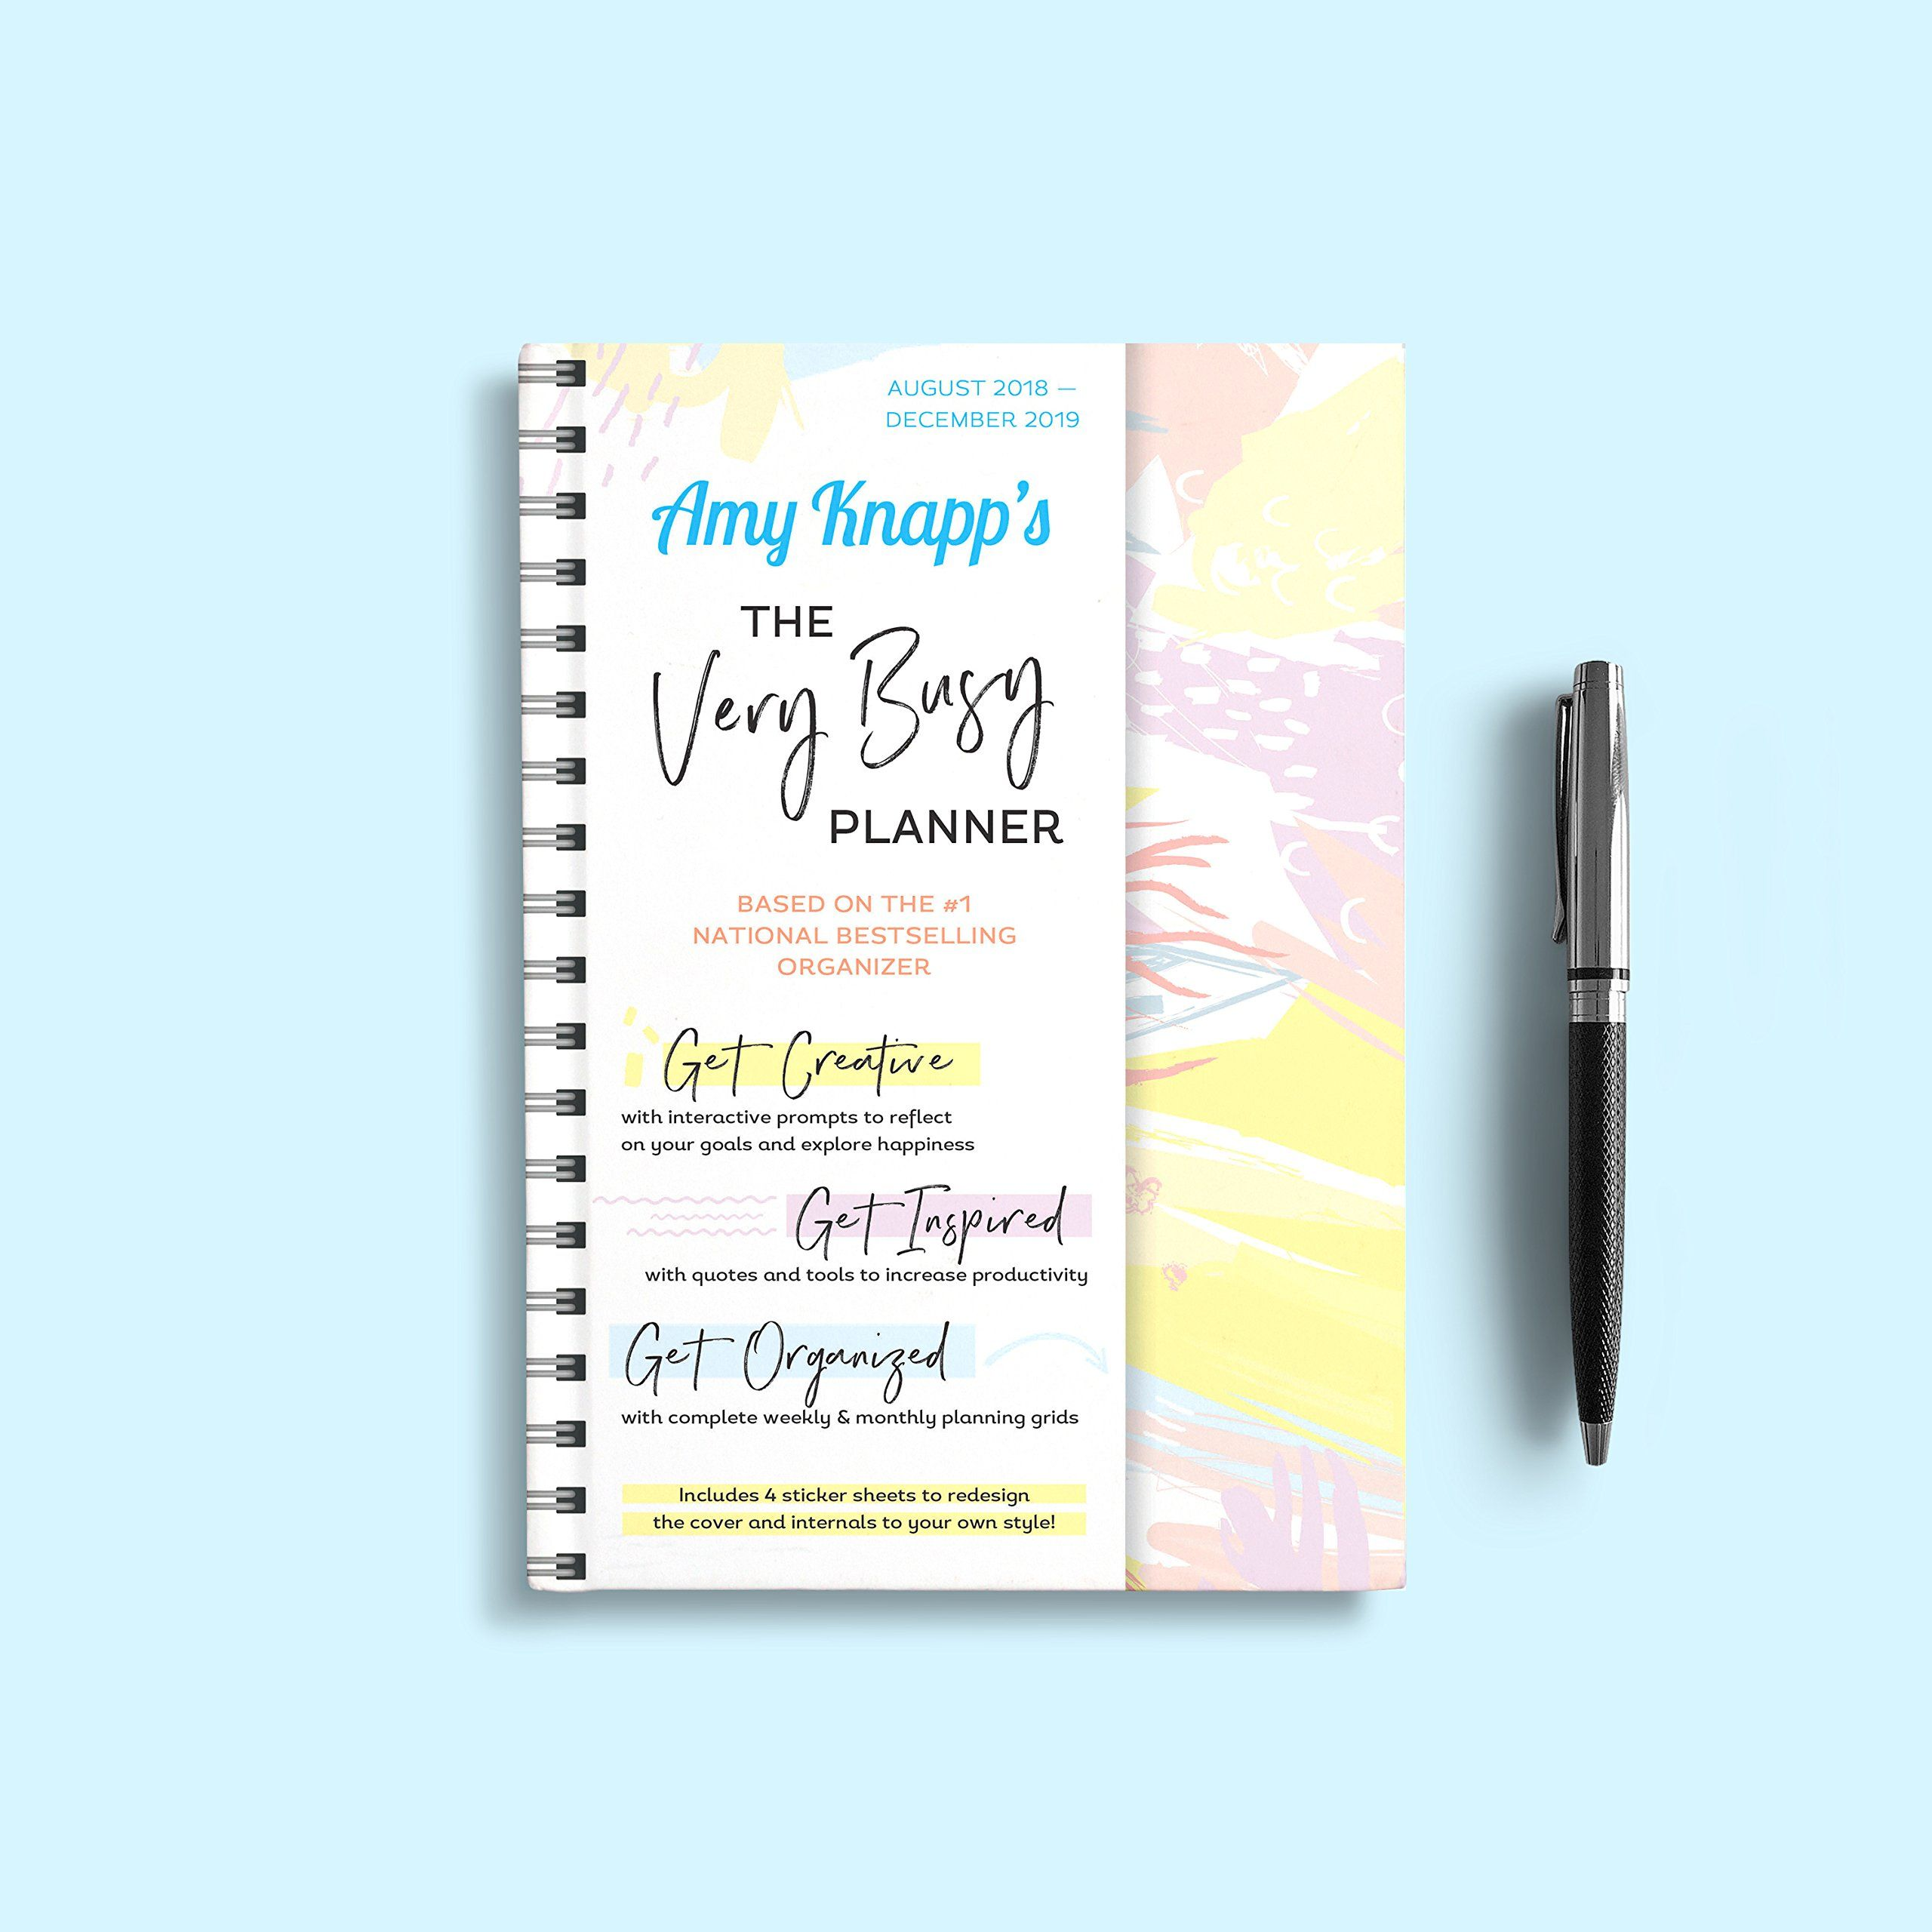 picture regarding May Books Planner identified as 2019 Amy Knapps The Amazingly Fast paced Planner: August 2018-December